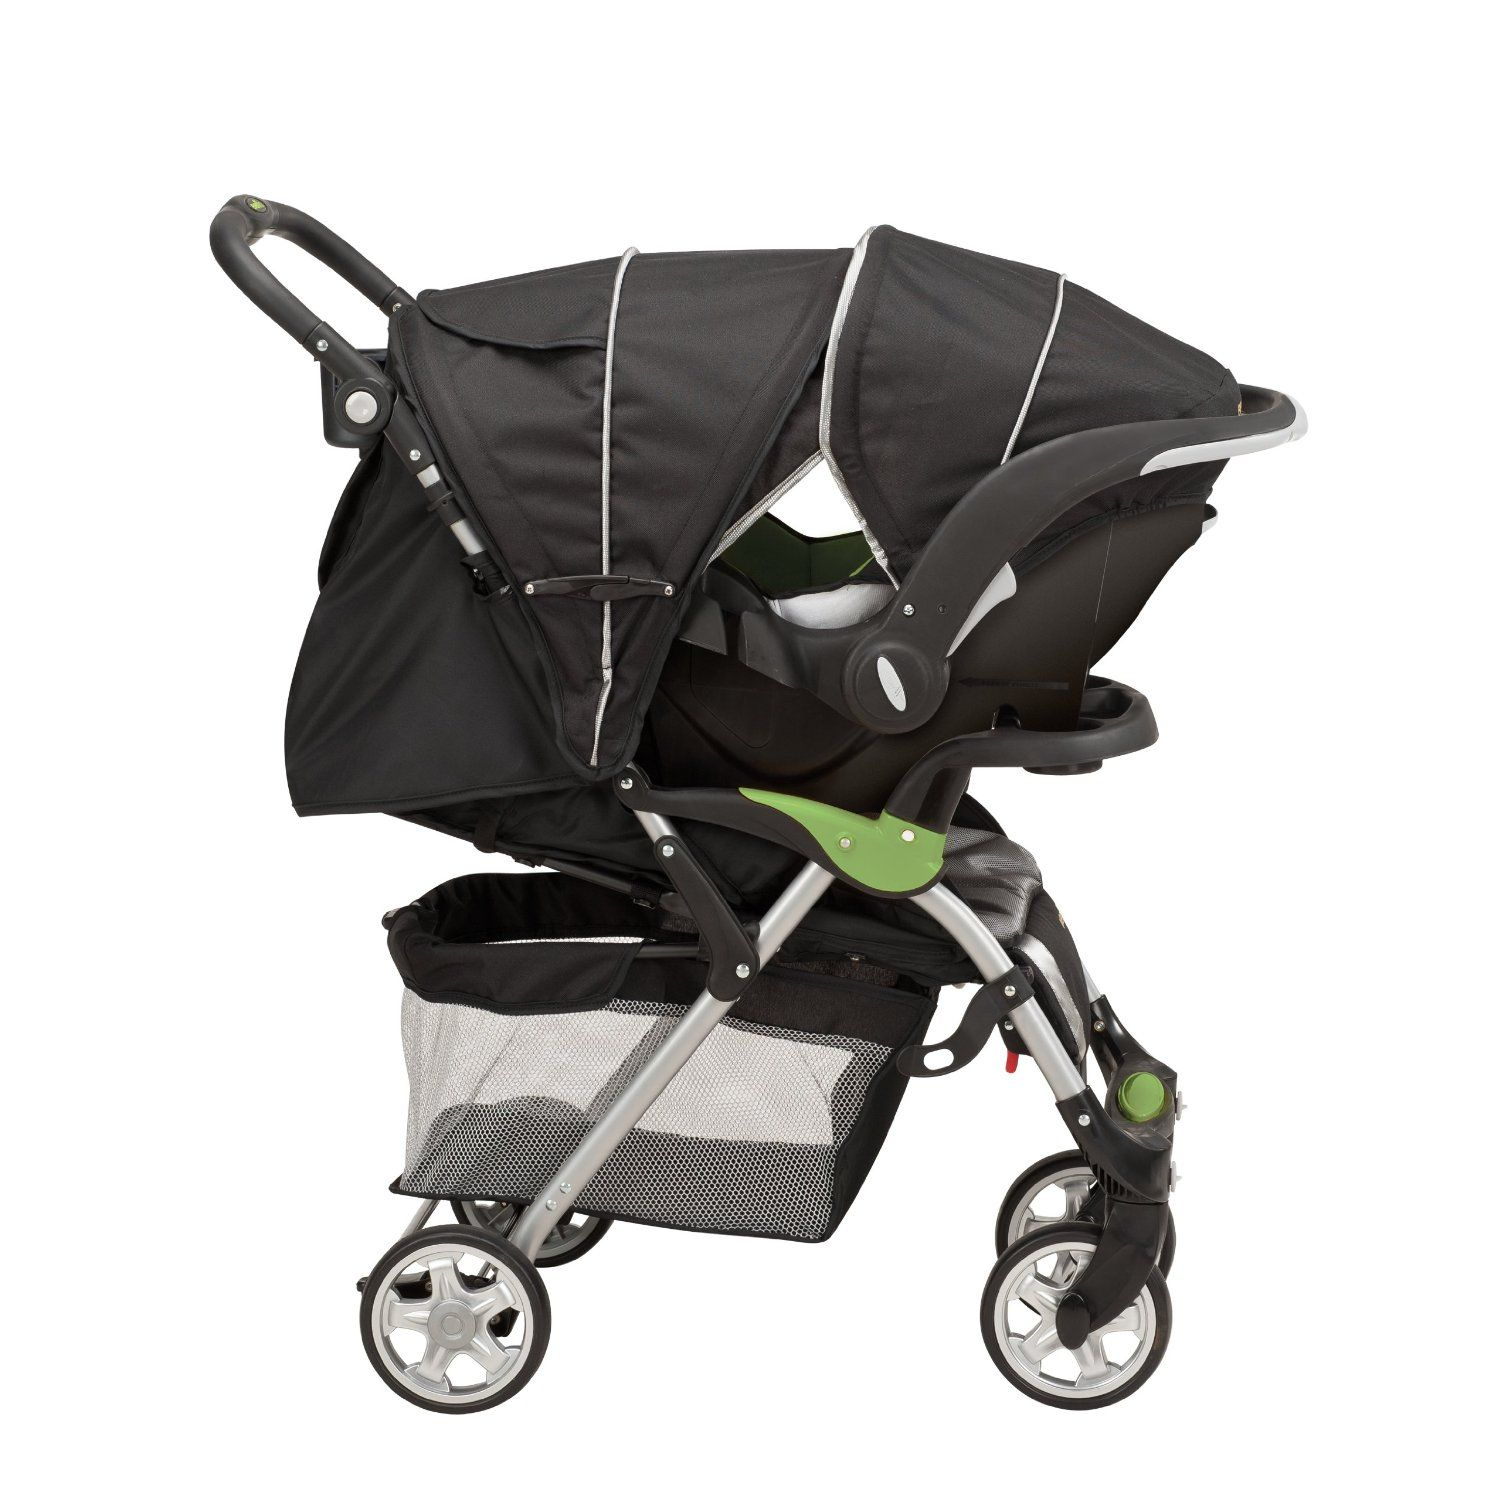 Baby Stroller Travel Systems. Evenflo FeatherLite 400